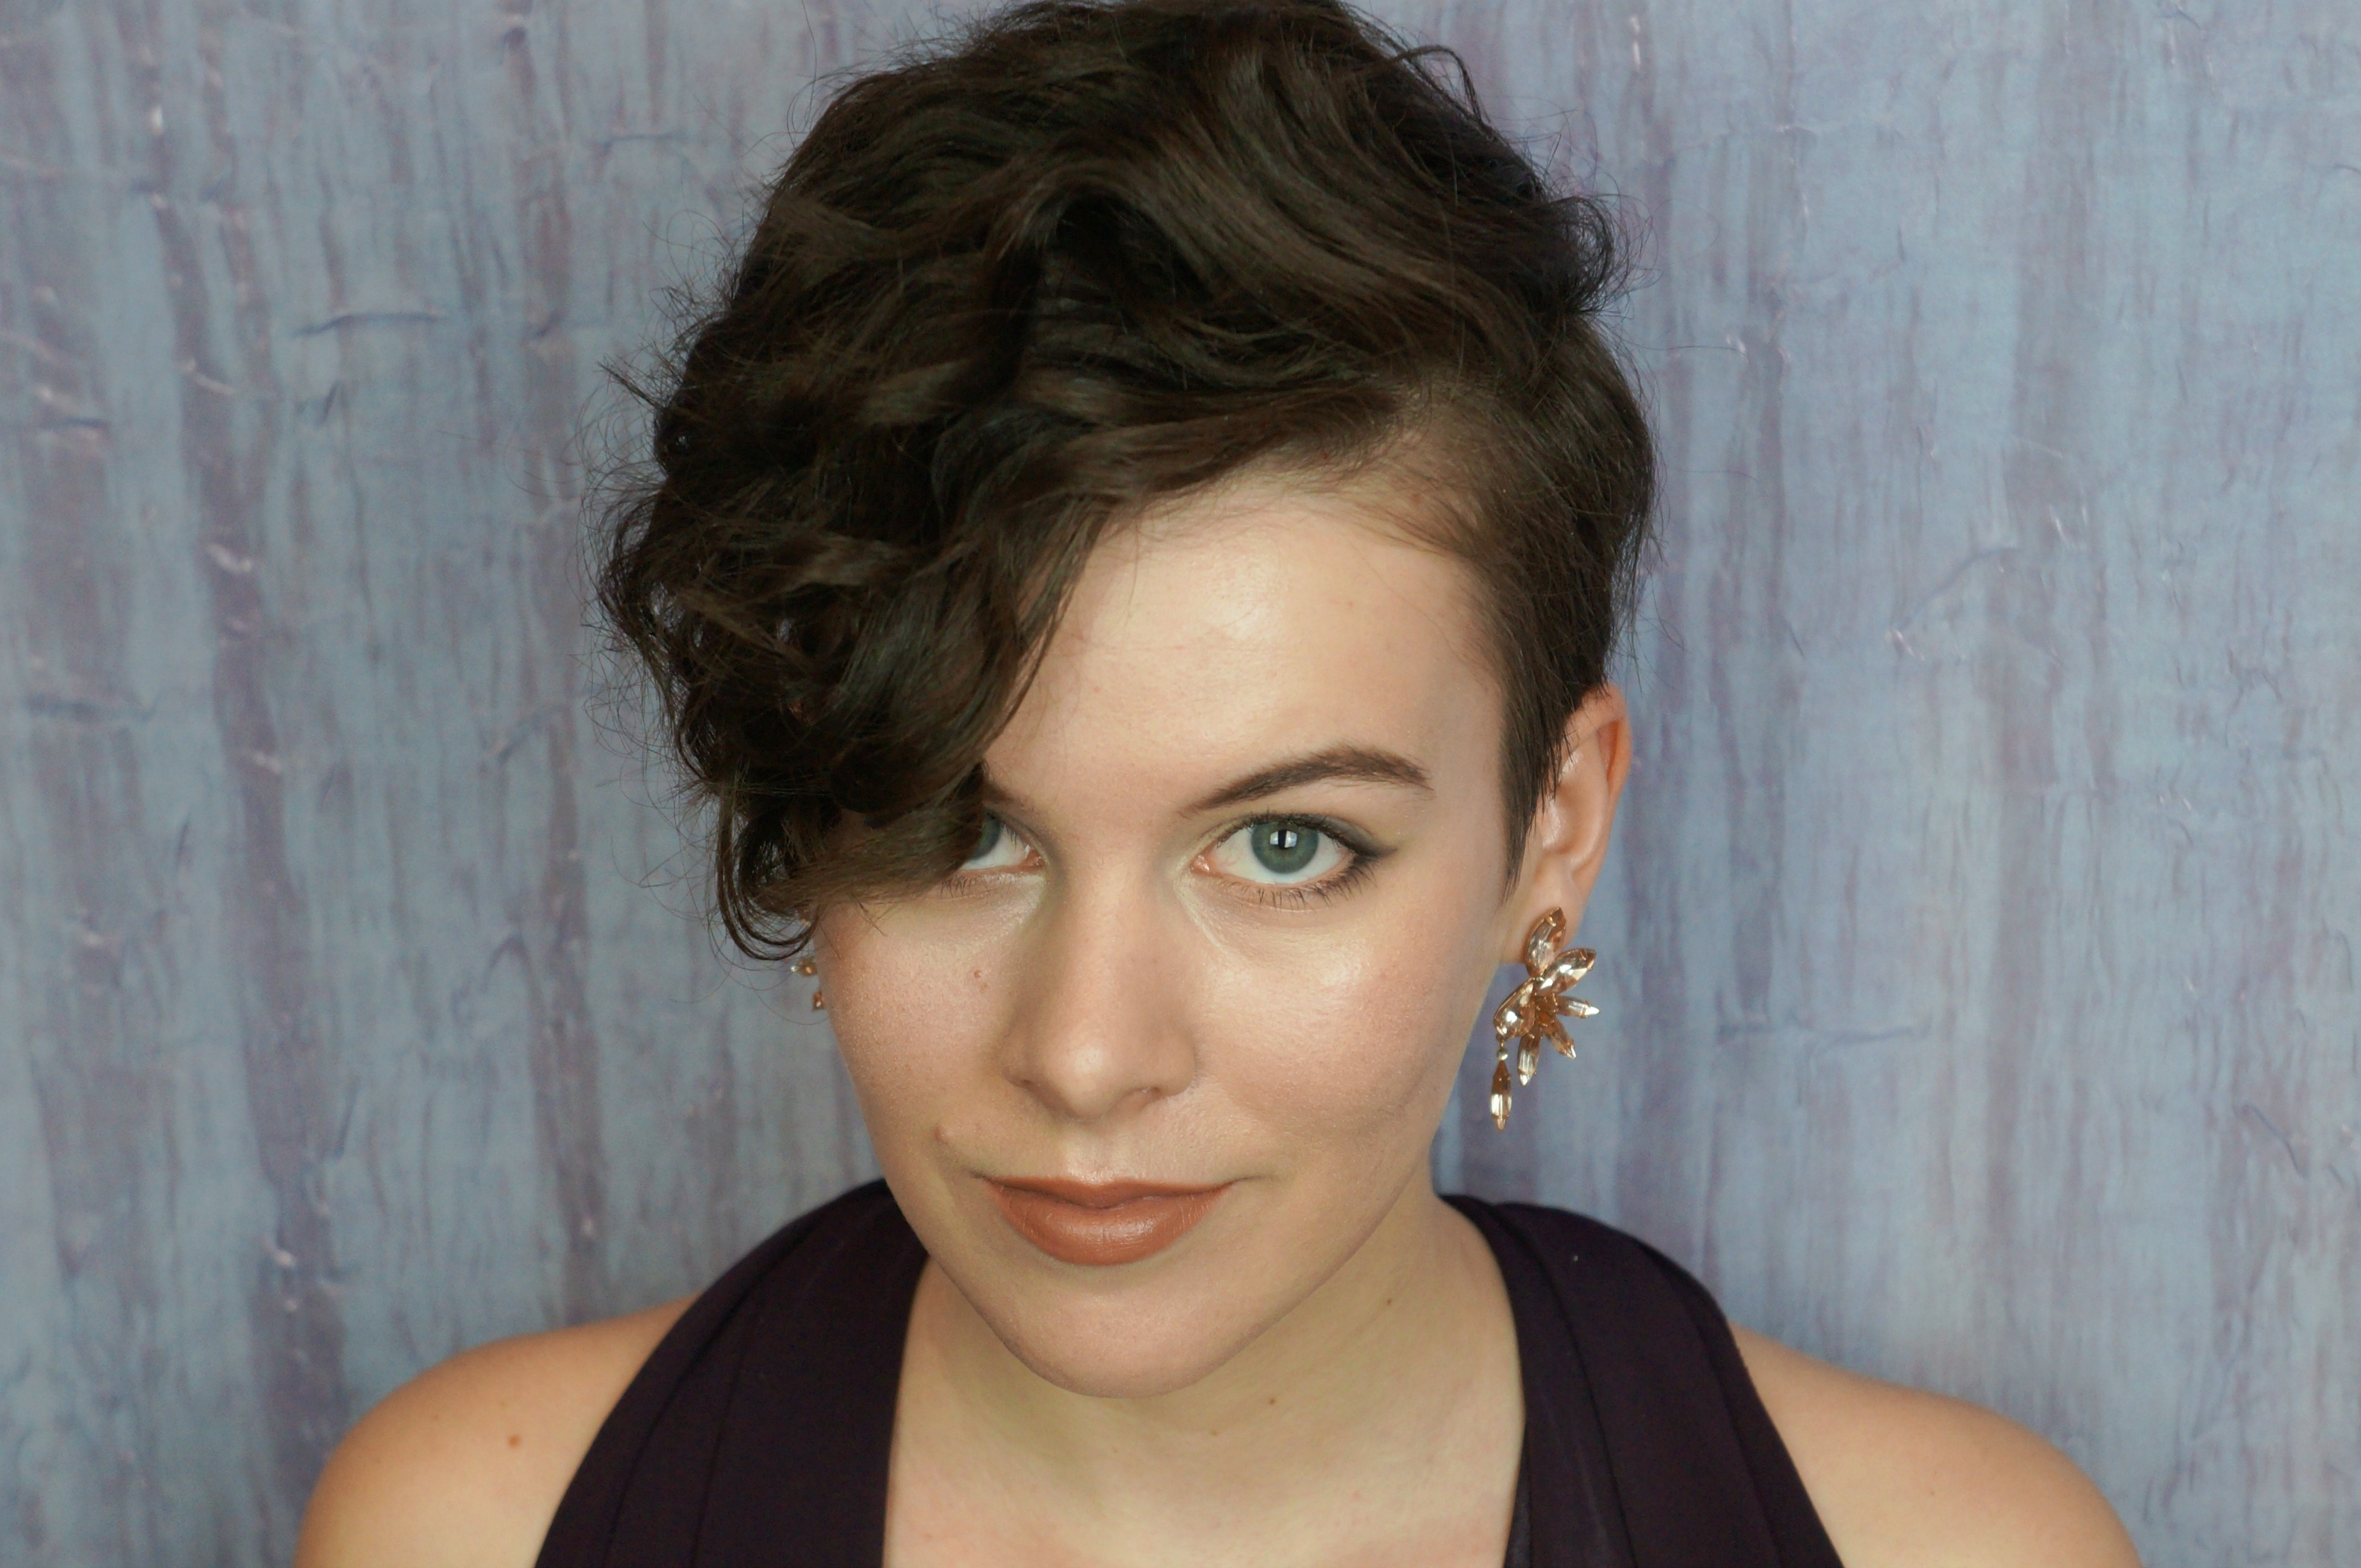 4 Short Hairstyles For Prom That Prove Pixie Cuts Can Be Extremely Glam Regarding Prom Short Hairstyles (View 13 of 25)